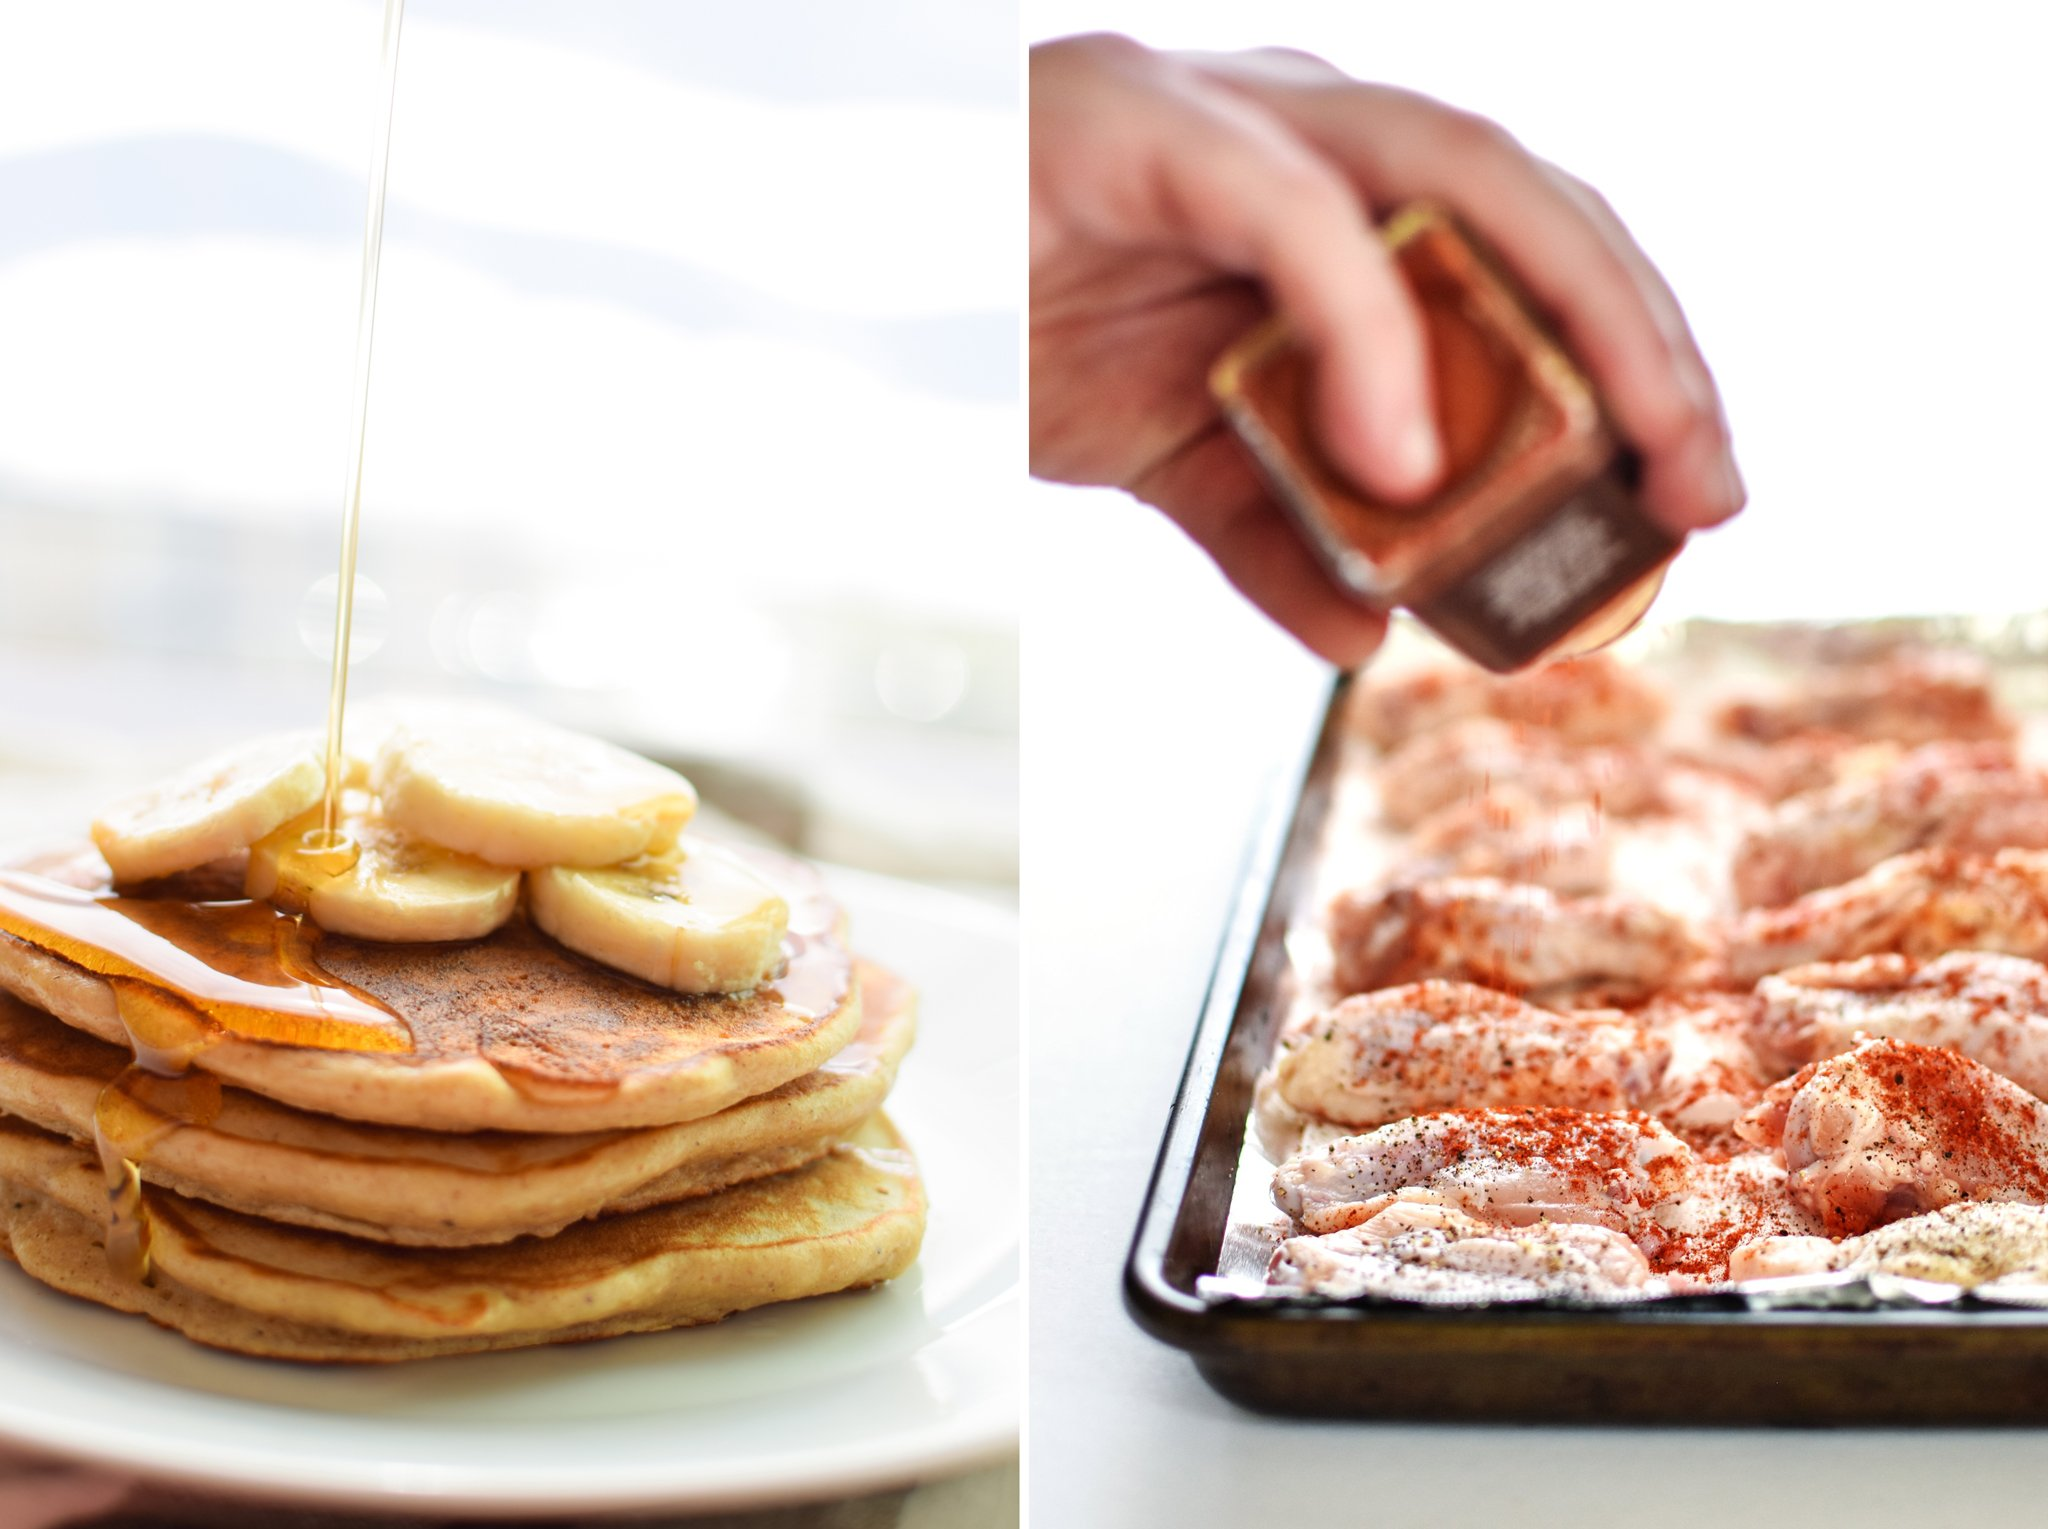 Banana protein pancakes with syrup drizzle on the left; paprika being sprinkled on raw chicken wings on the right.